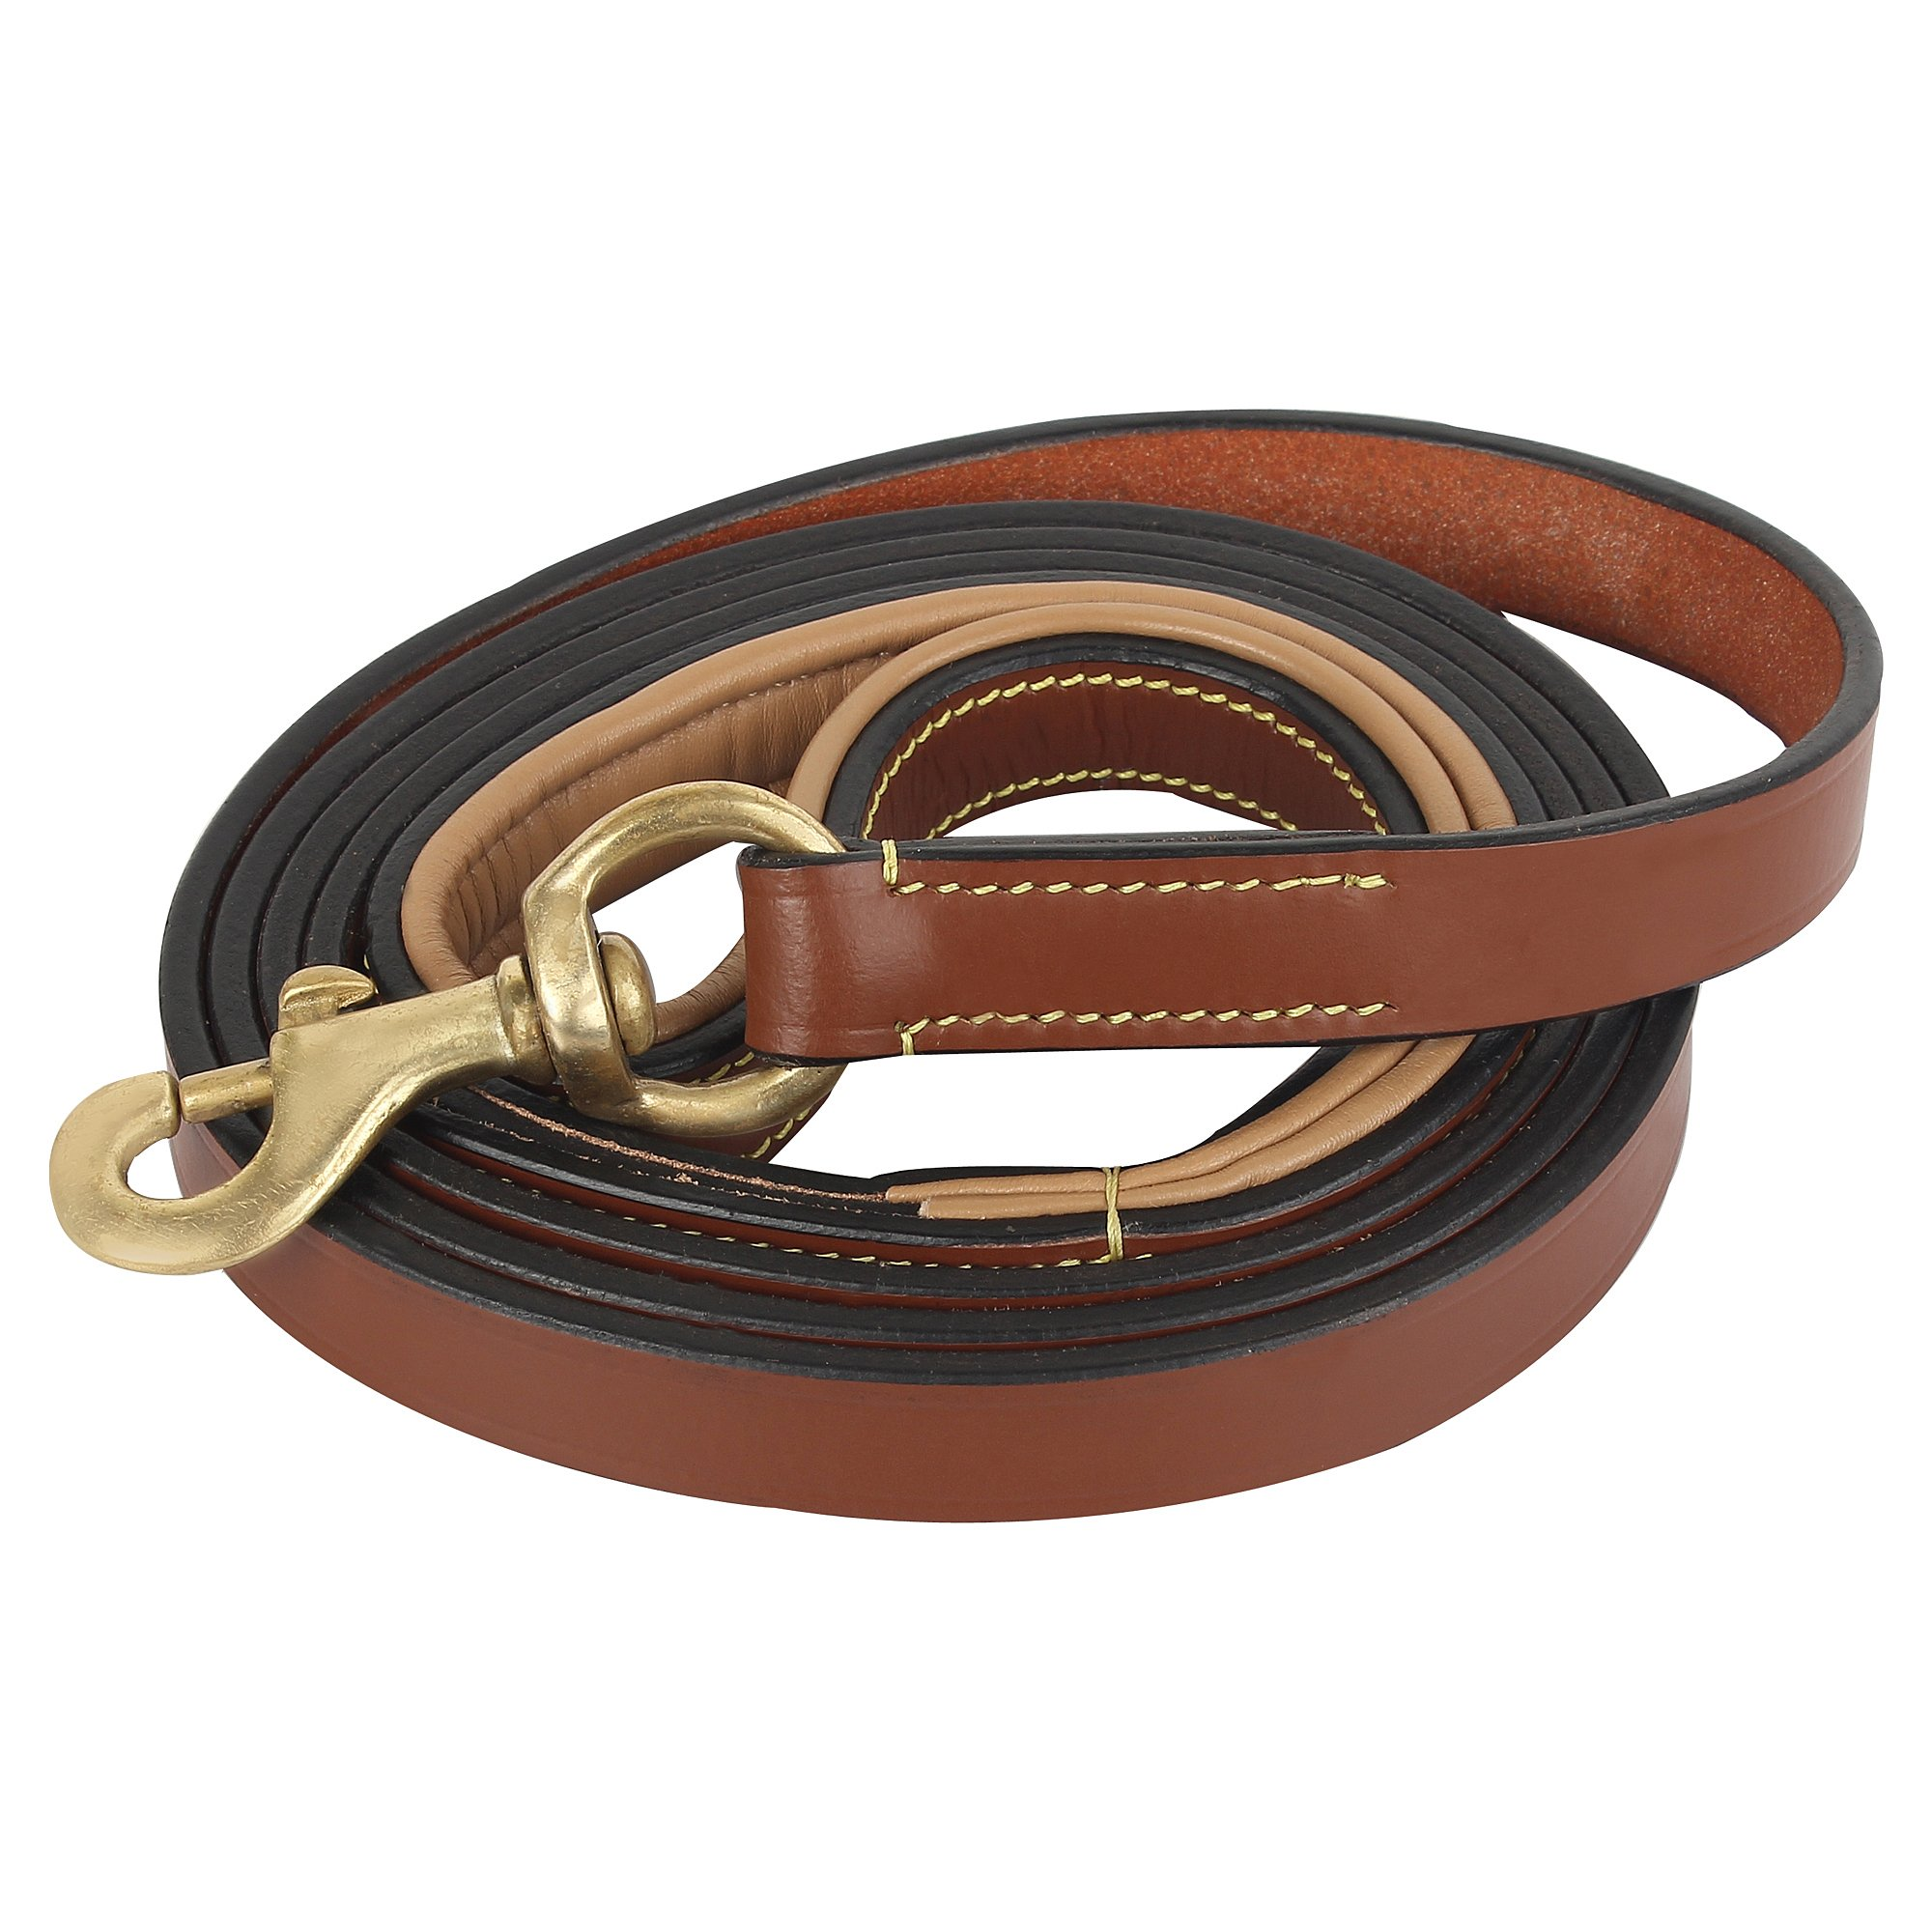 Rustic Town Leather Dog Leash 6 ft - Gentle Leader Leash for Small, Medium & Large Dogs - Miltary Grade Lead for Training & Walking by Rustic Town (Image #1)